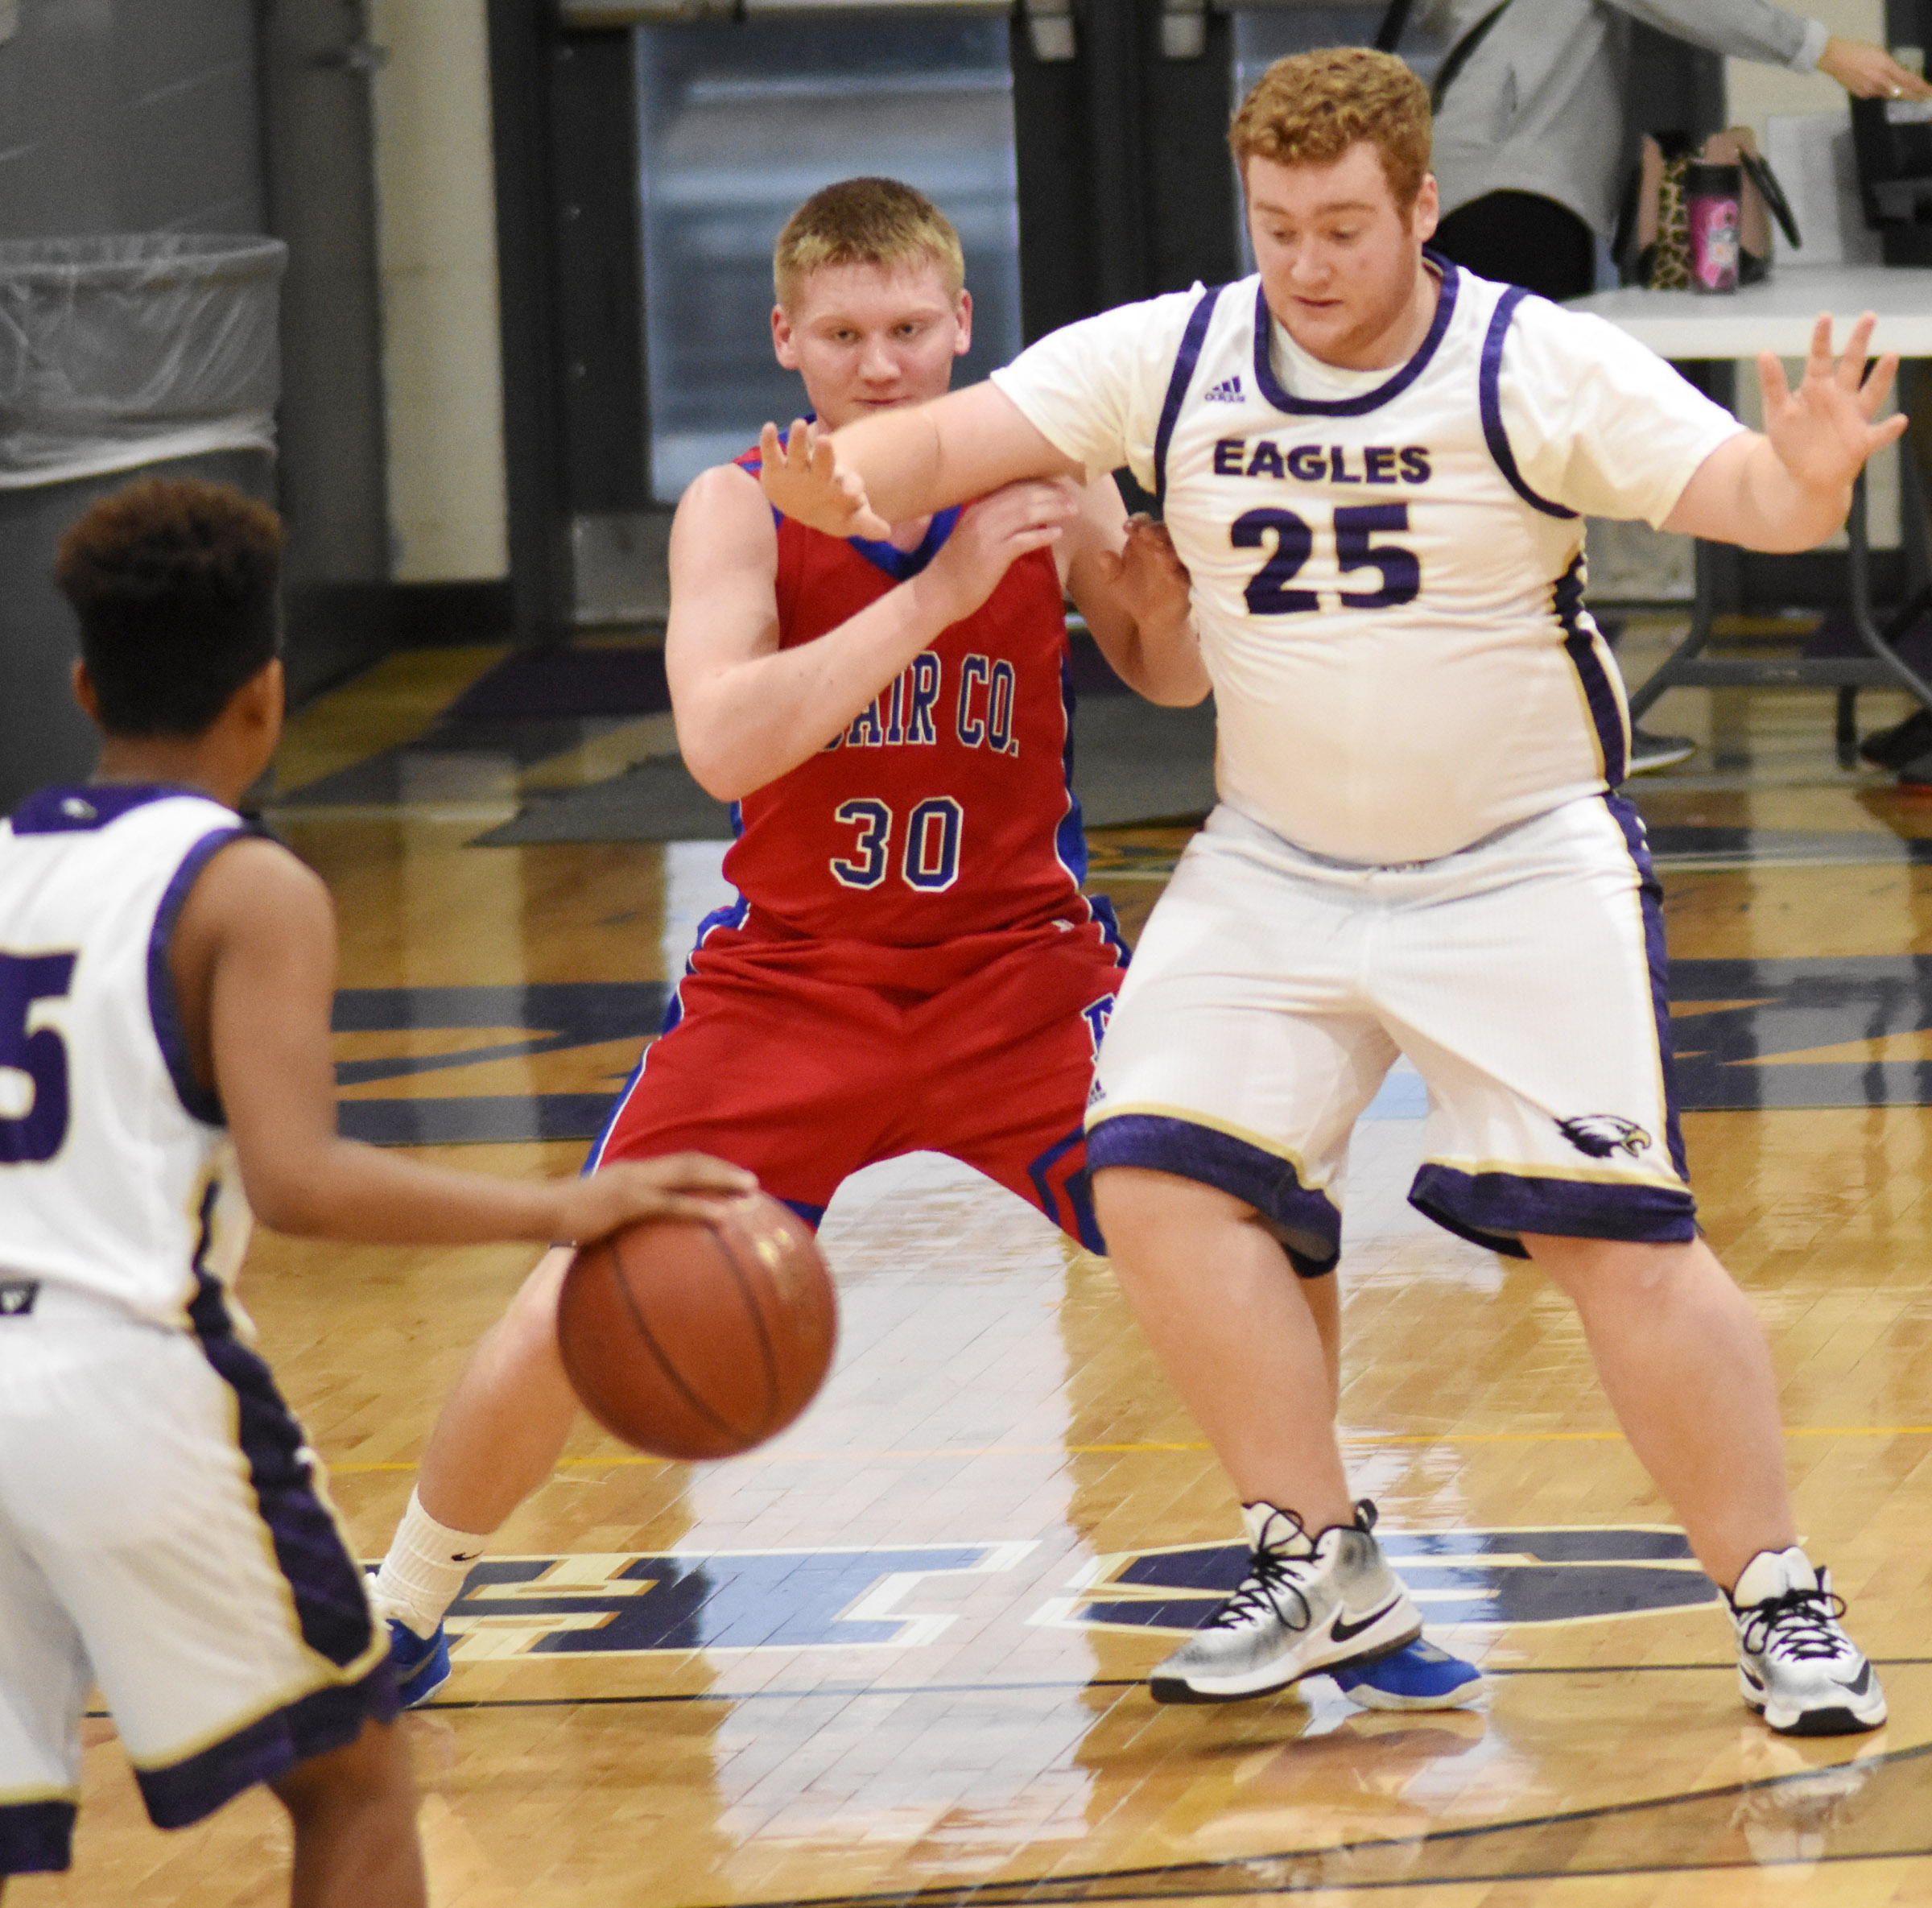 CHS junior Spencer Swafford plays defense.